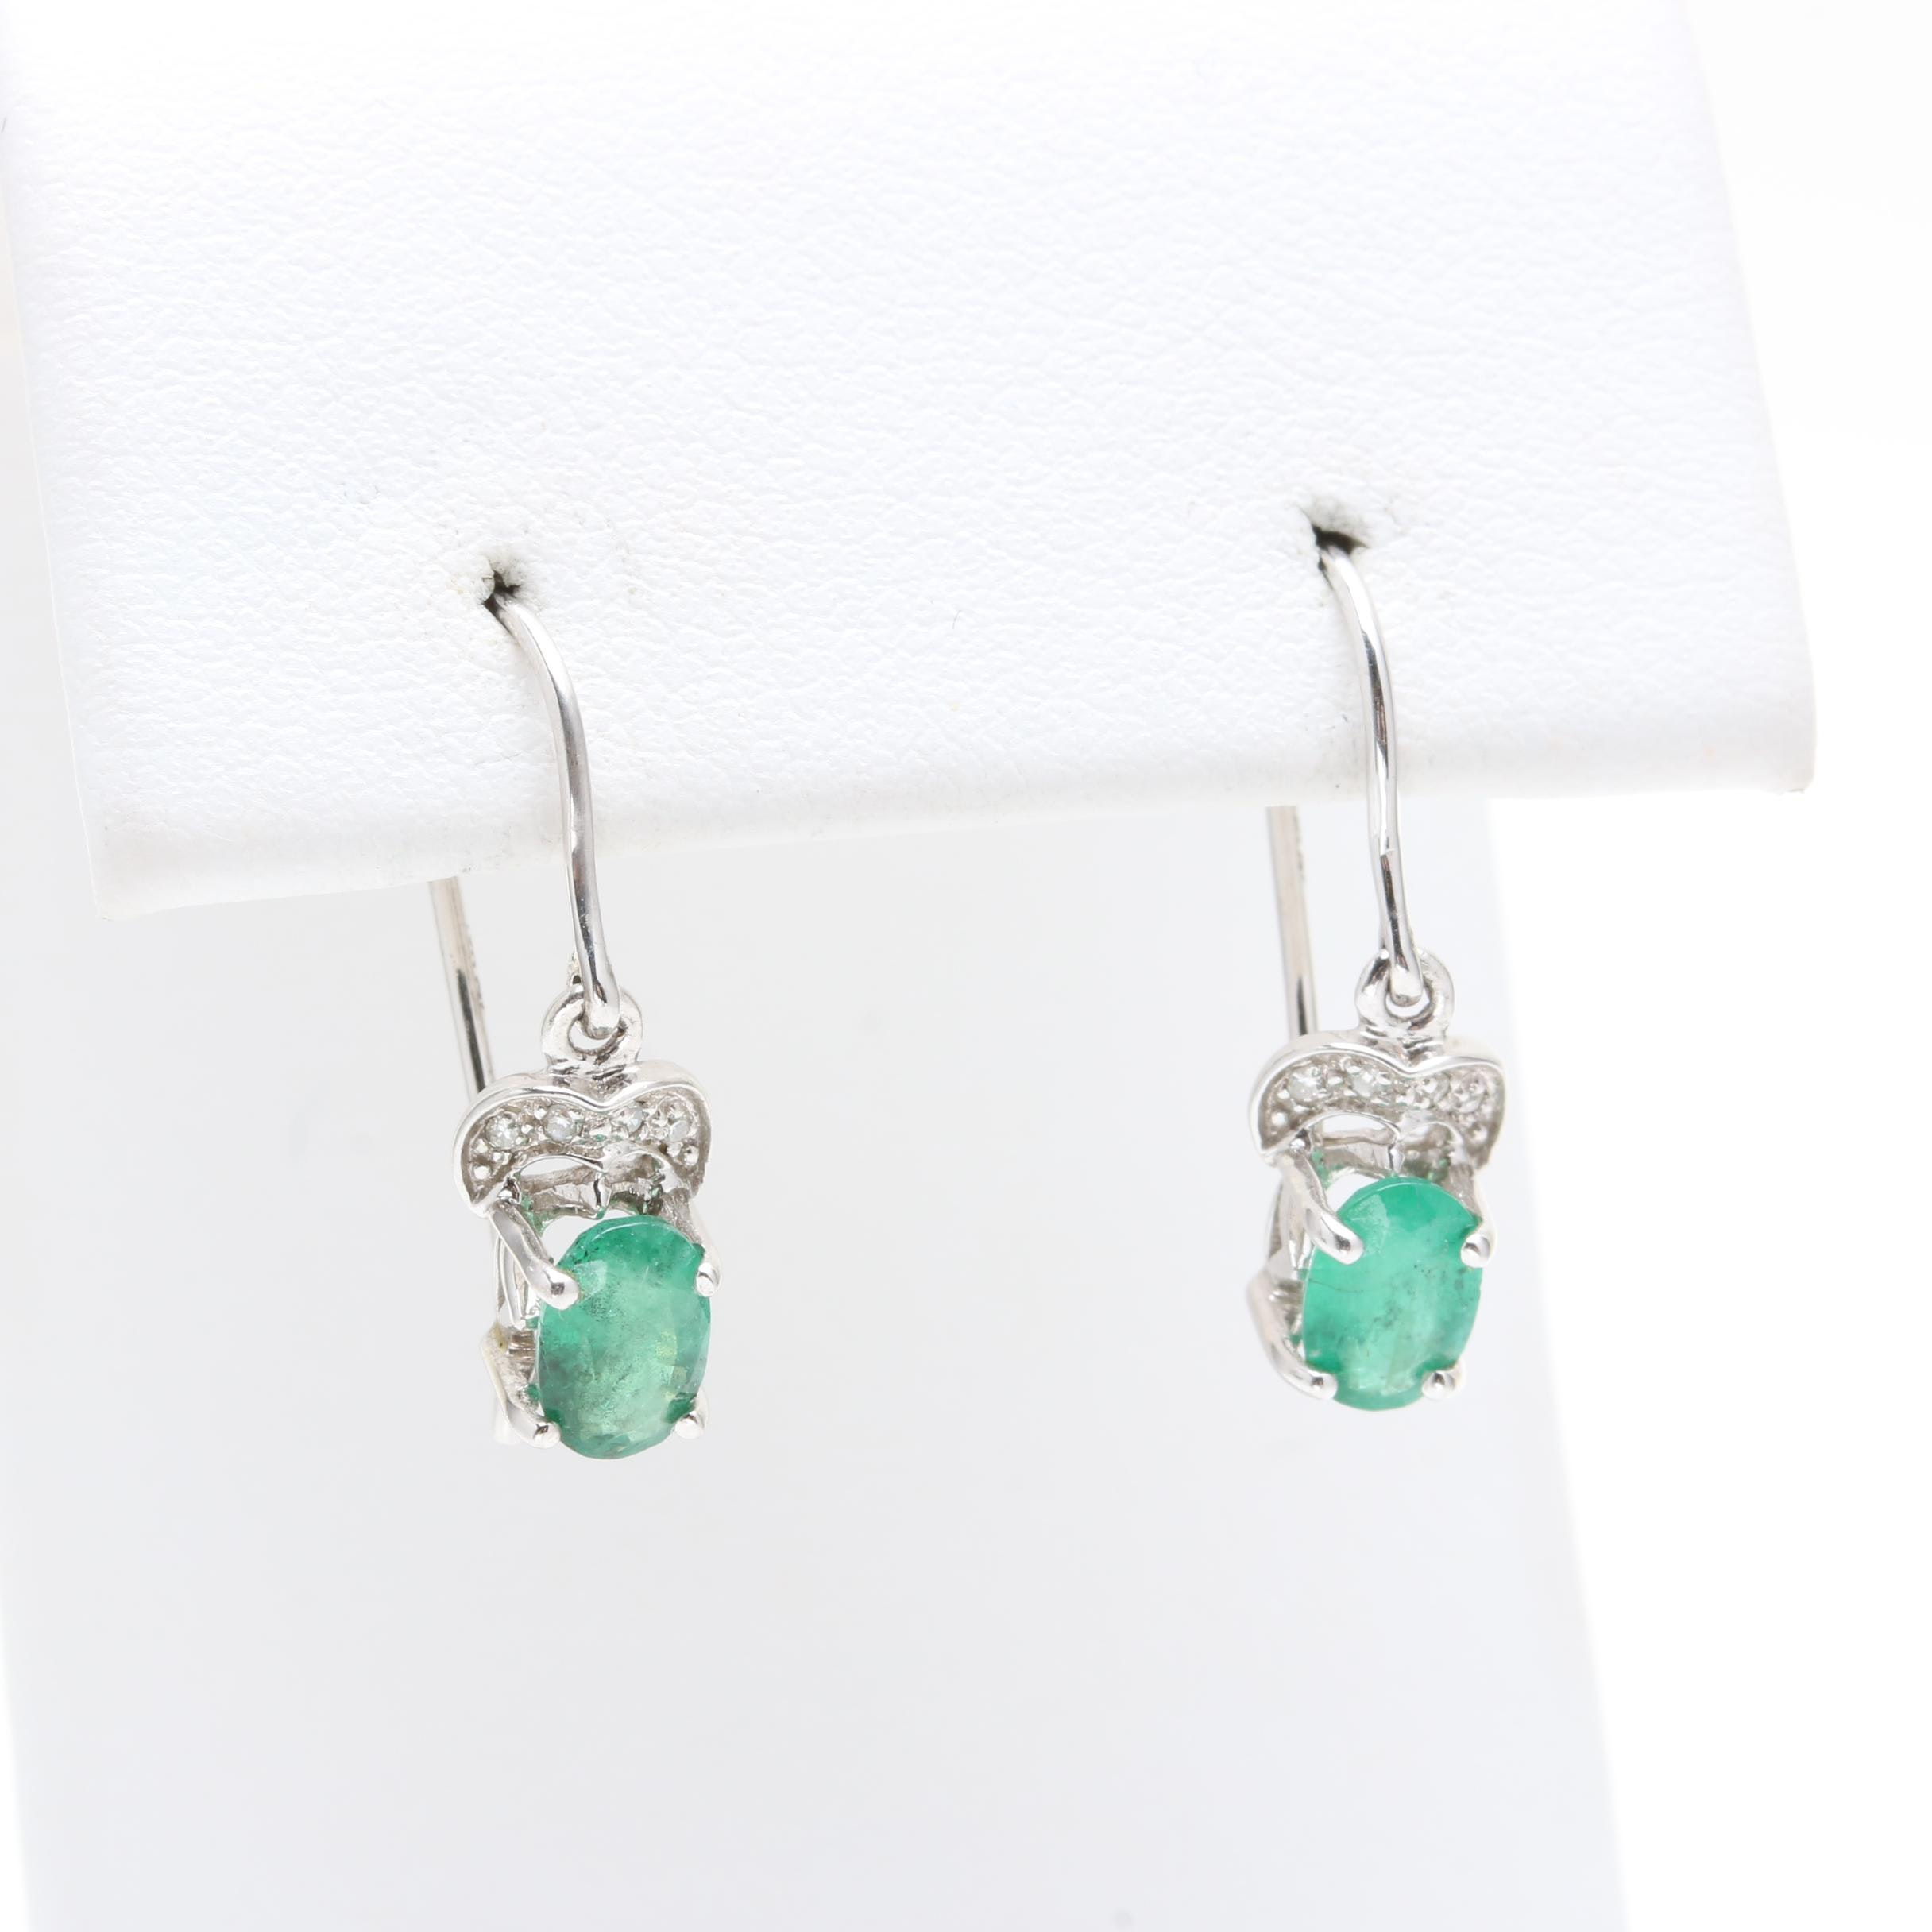 10K White Gold Emerald and Diamond Dangle Earrings